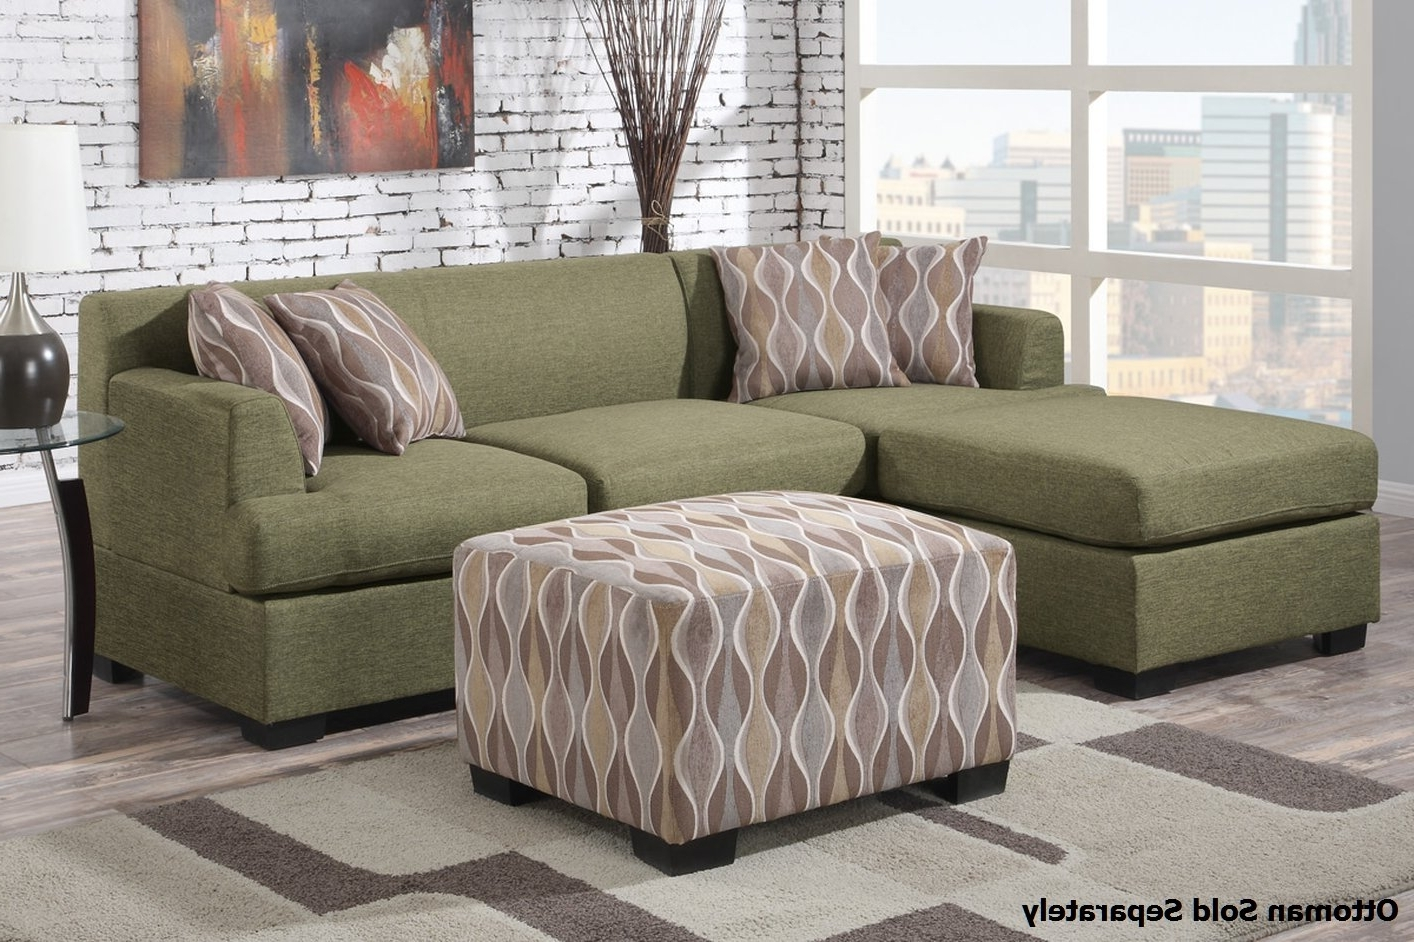 Widely Used Montreal Sectional Sofas Regarding Montreal Ii Green Fabric Sectional Sofa – Steal A Sofa Furniture (View 7 of 20)